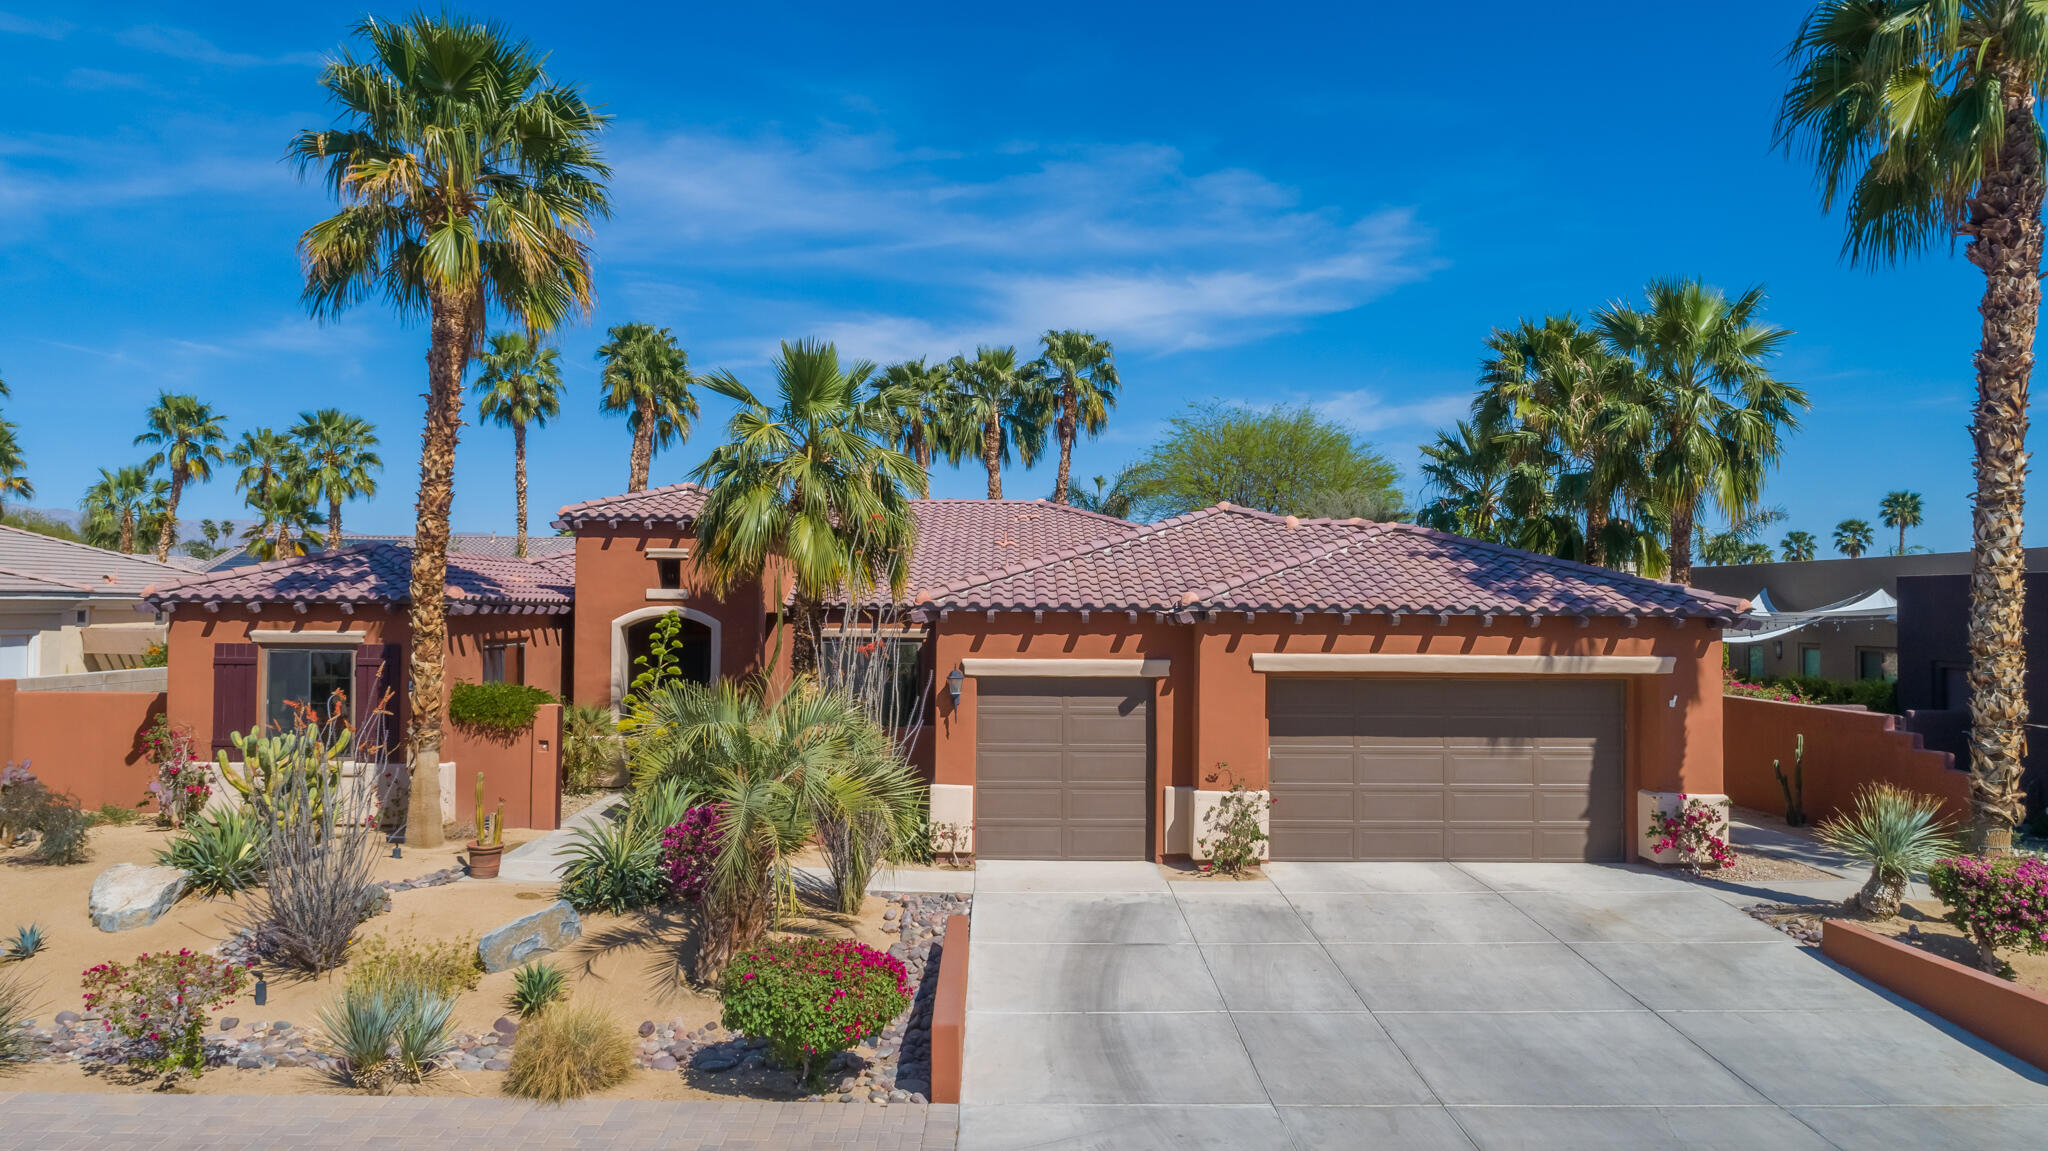 Photo of 48752 Sojourn Street, Indio, CA 92201